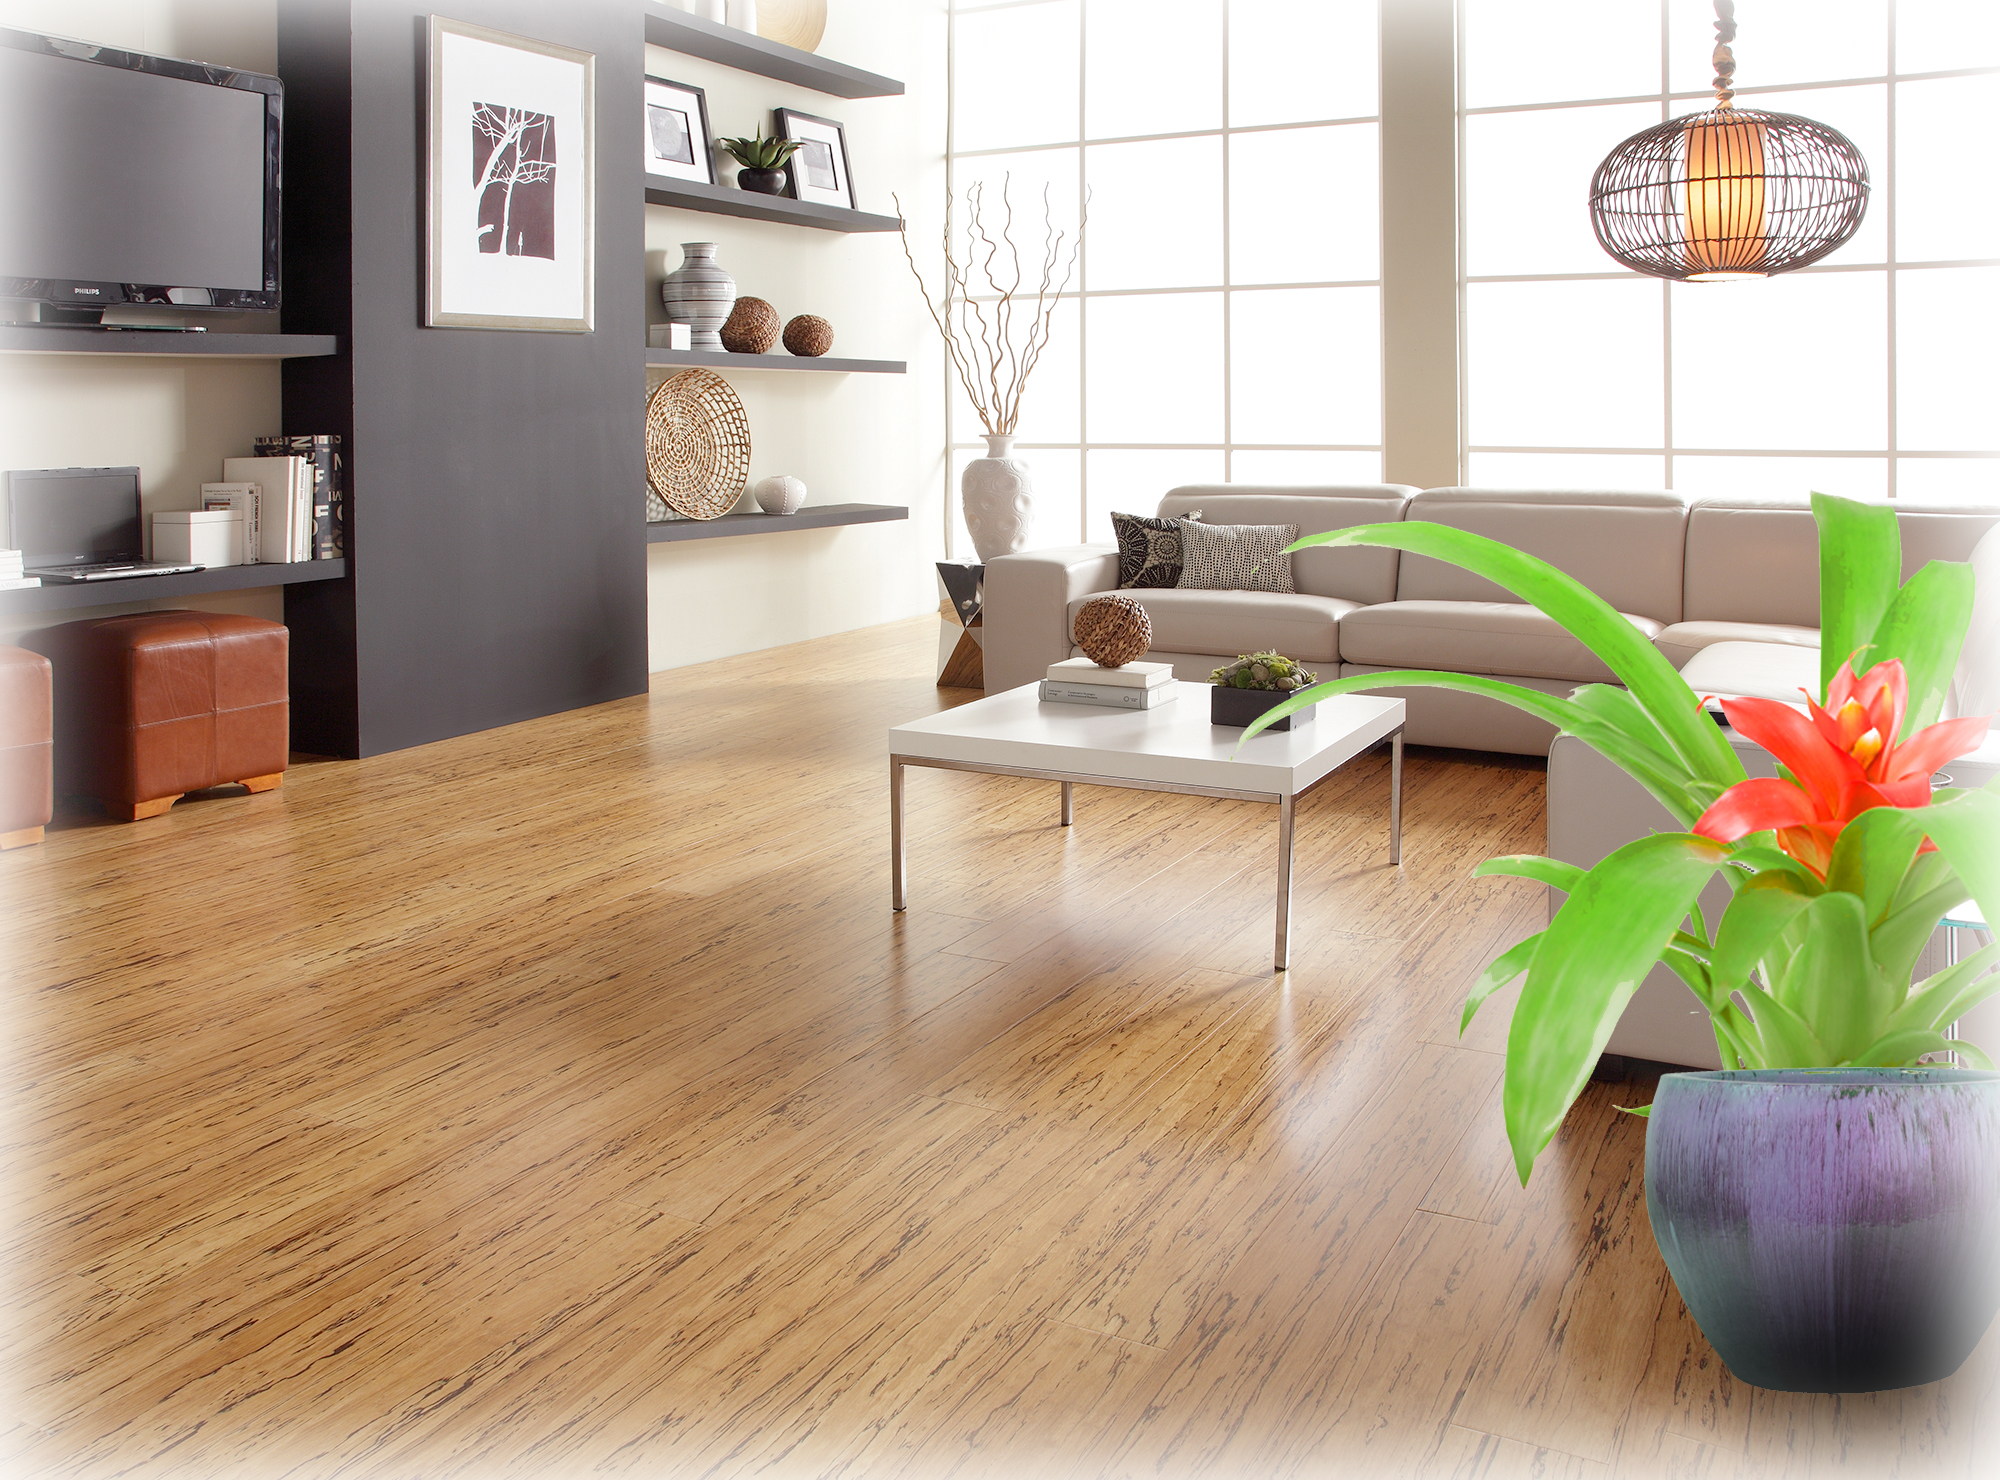 4 eco friendly flooring options upstater for Eco friendly flooring